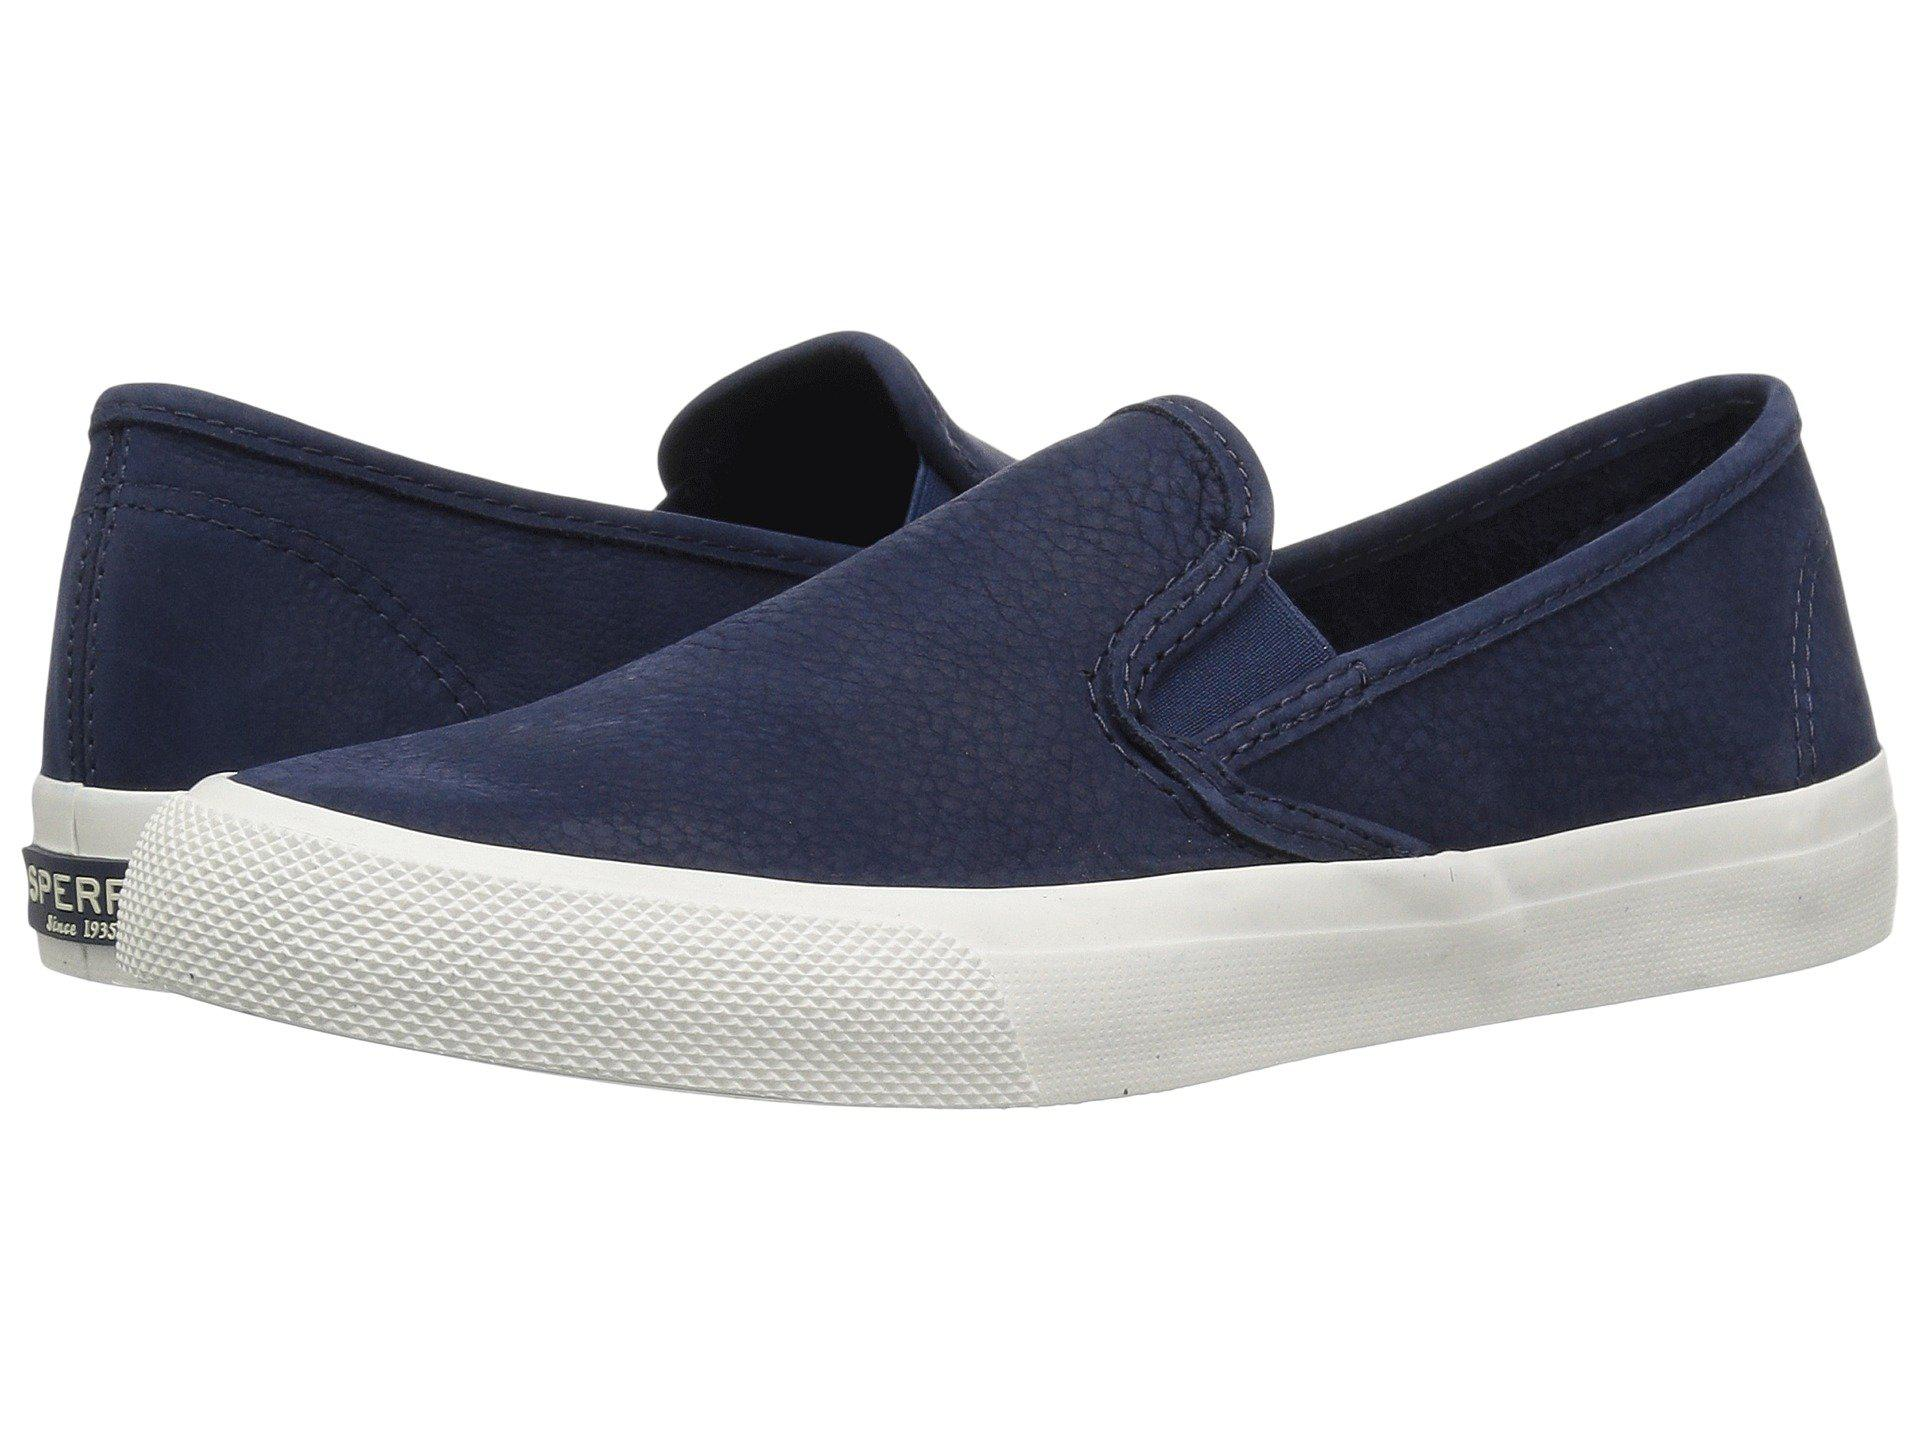 Sperry Top-Sider Canvas Seaside